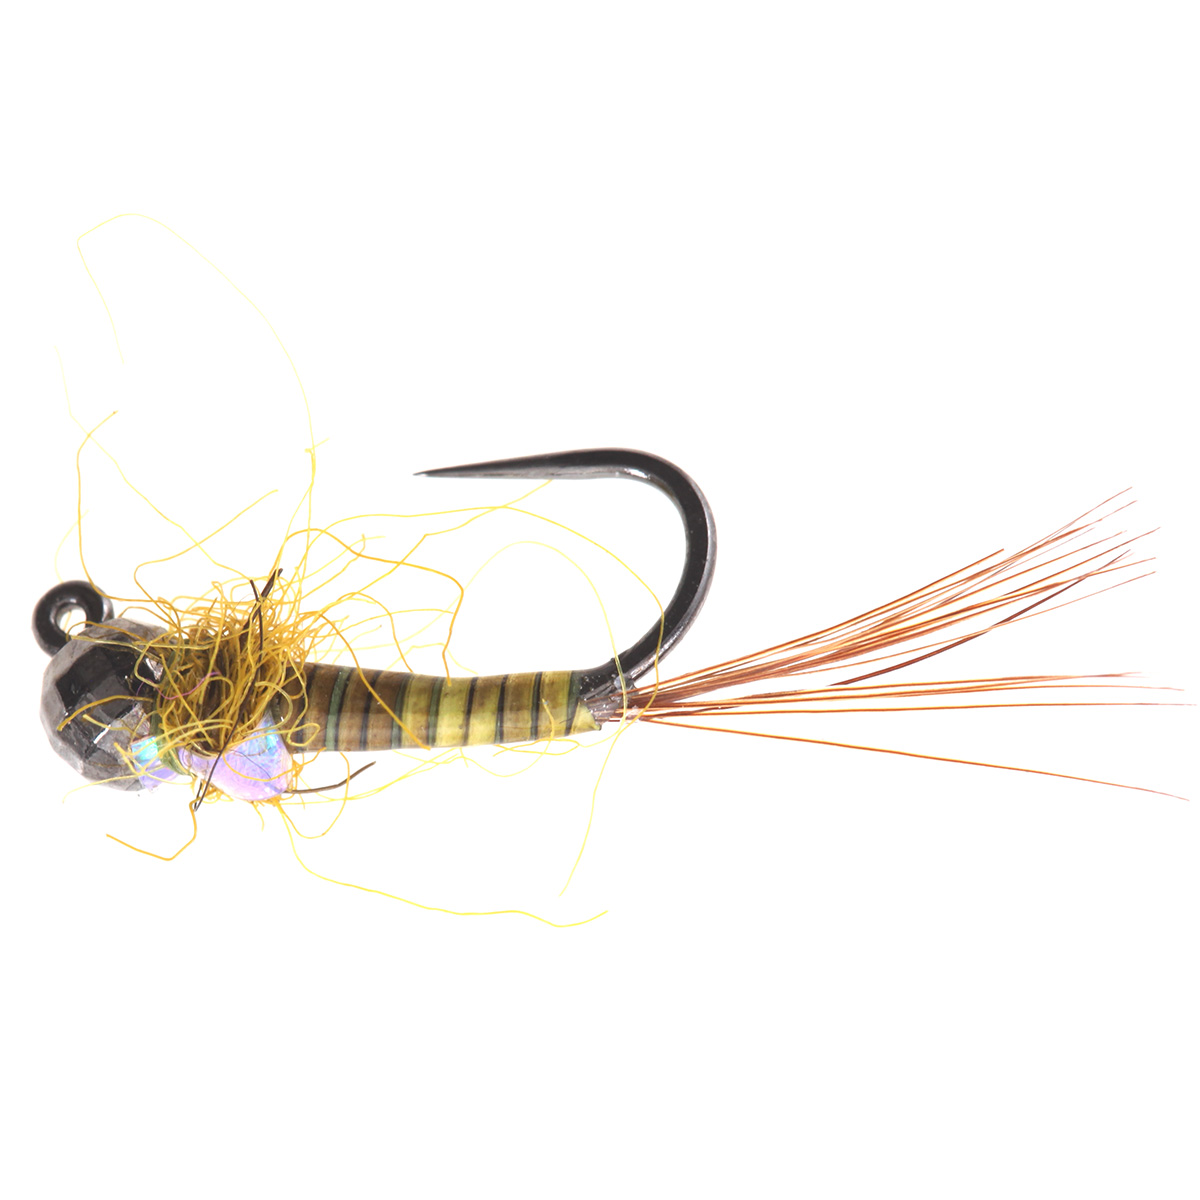 Olive Quill Body Flash Back Jig